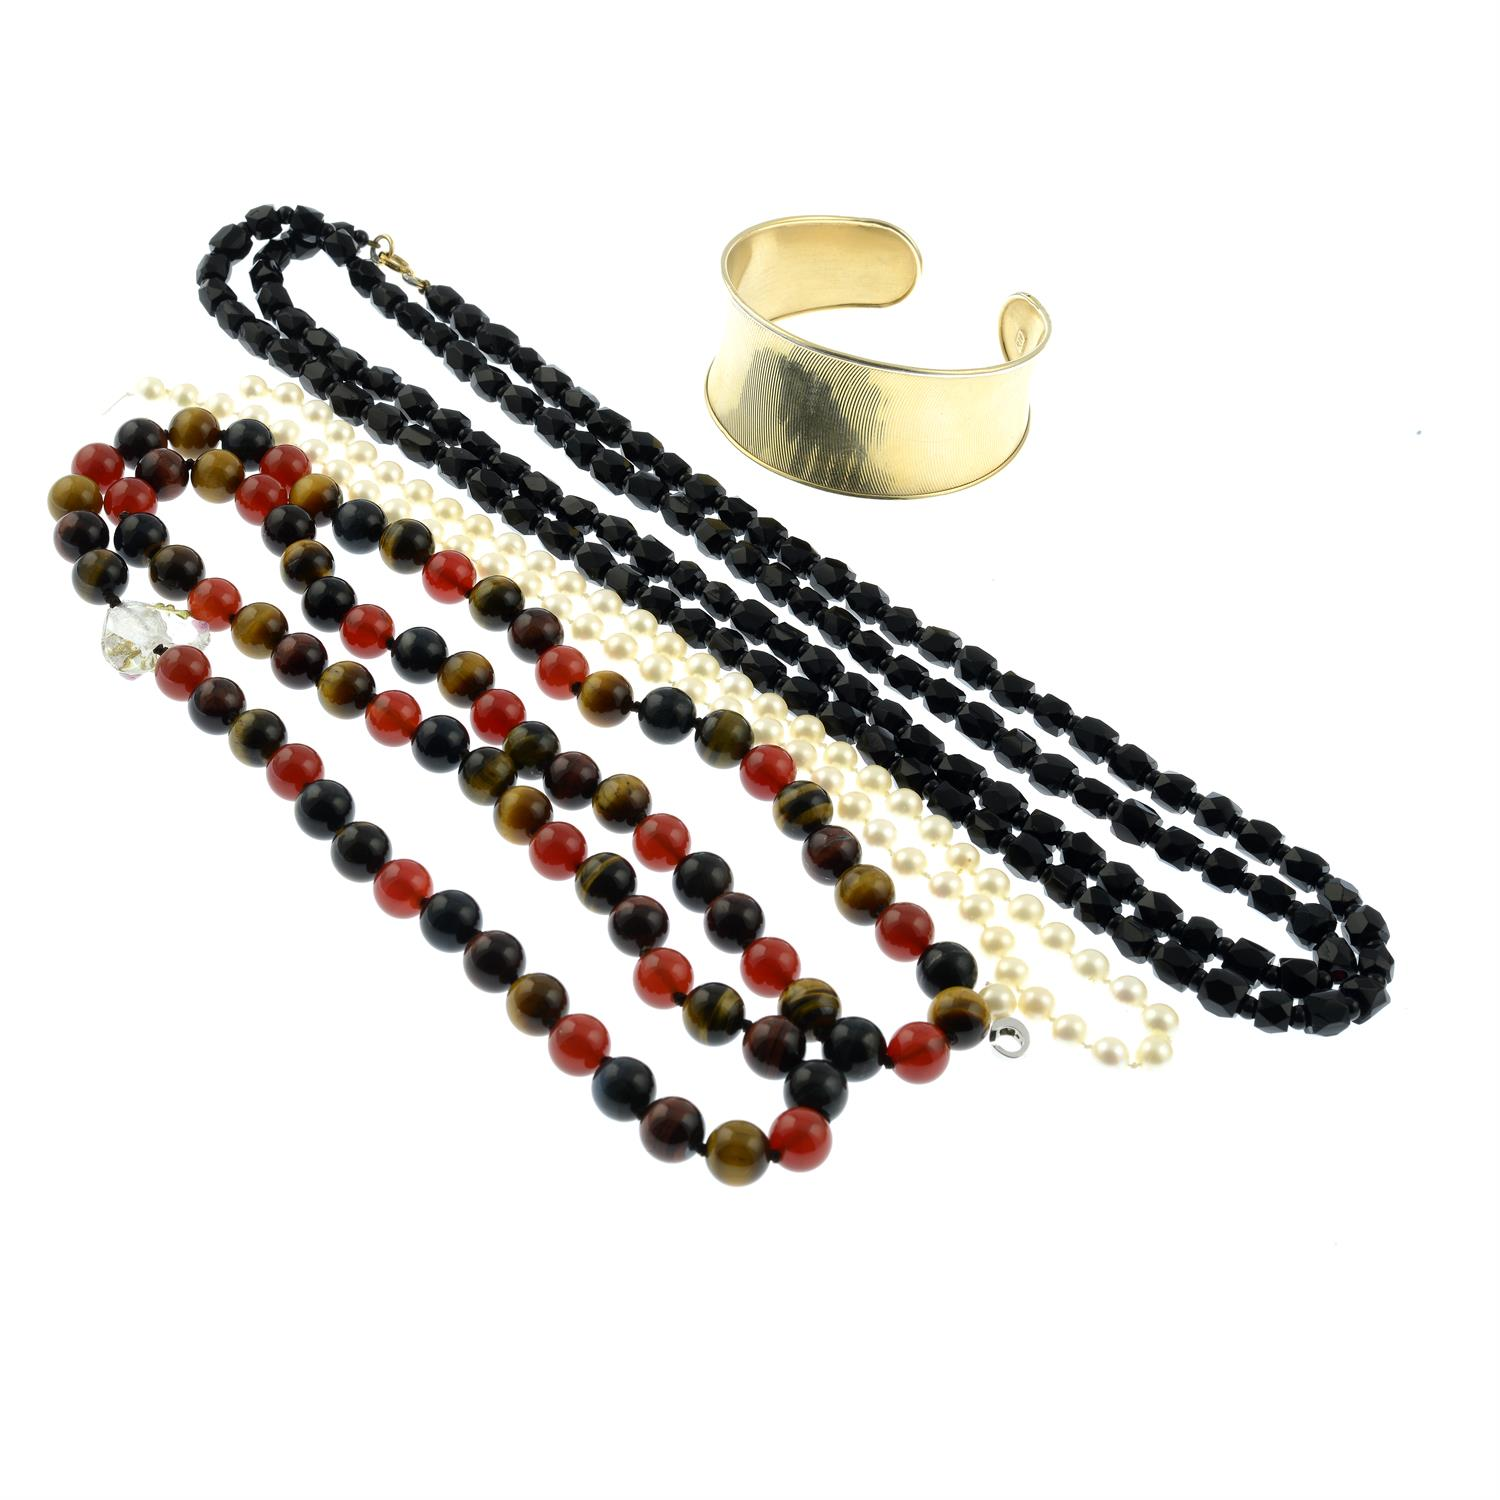 A grooved cuff bangle, a tiger's-eye bead necklace, a black glass necklace and a cultured pearl - Image 2 of 2